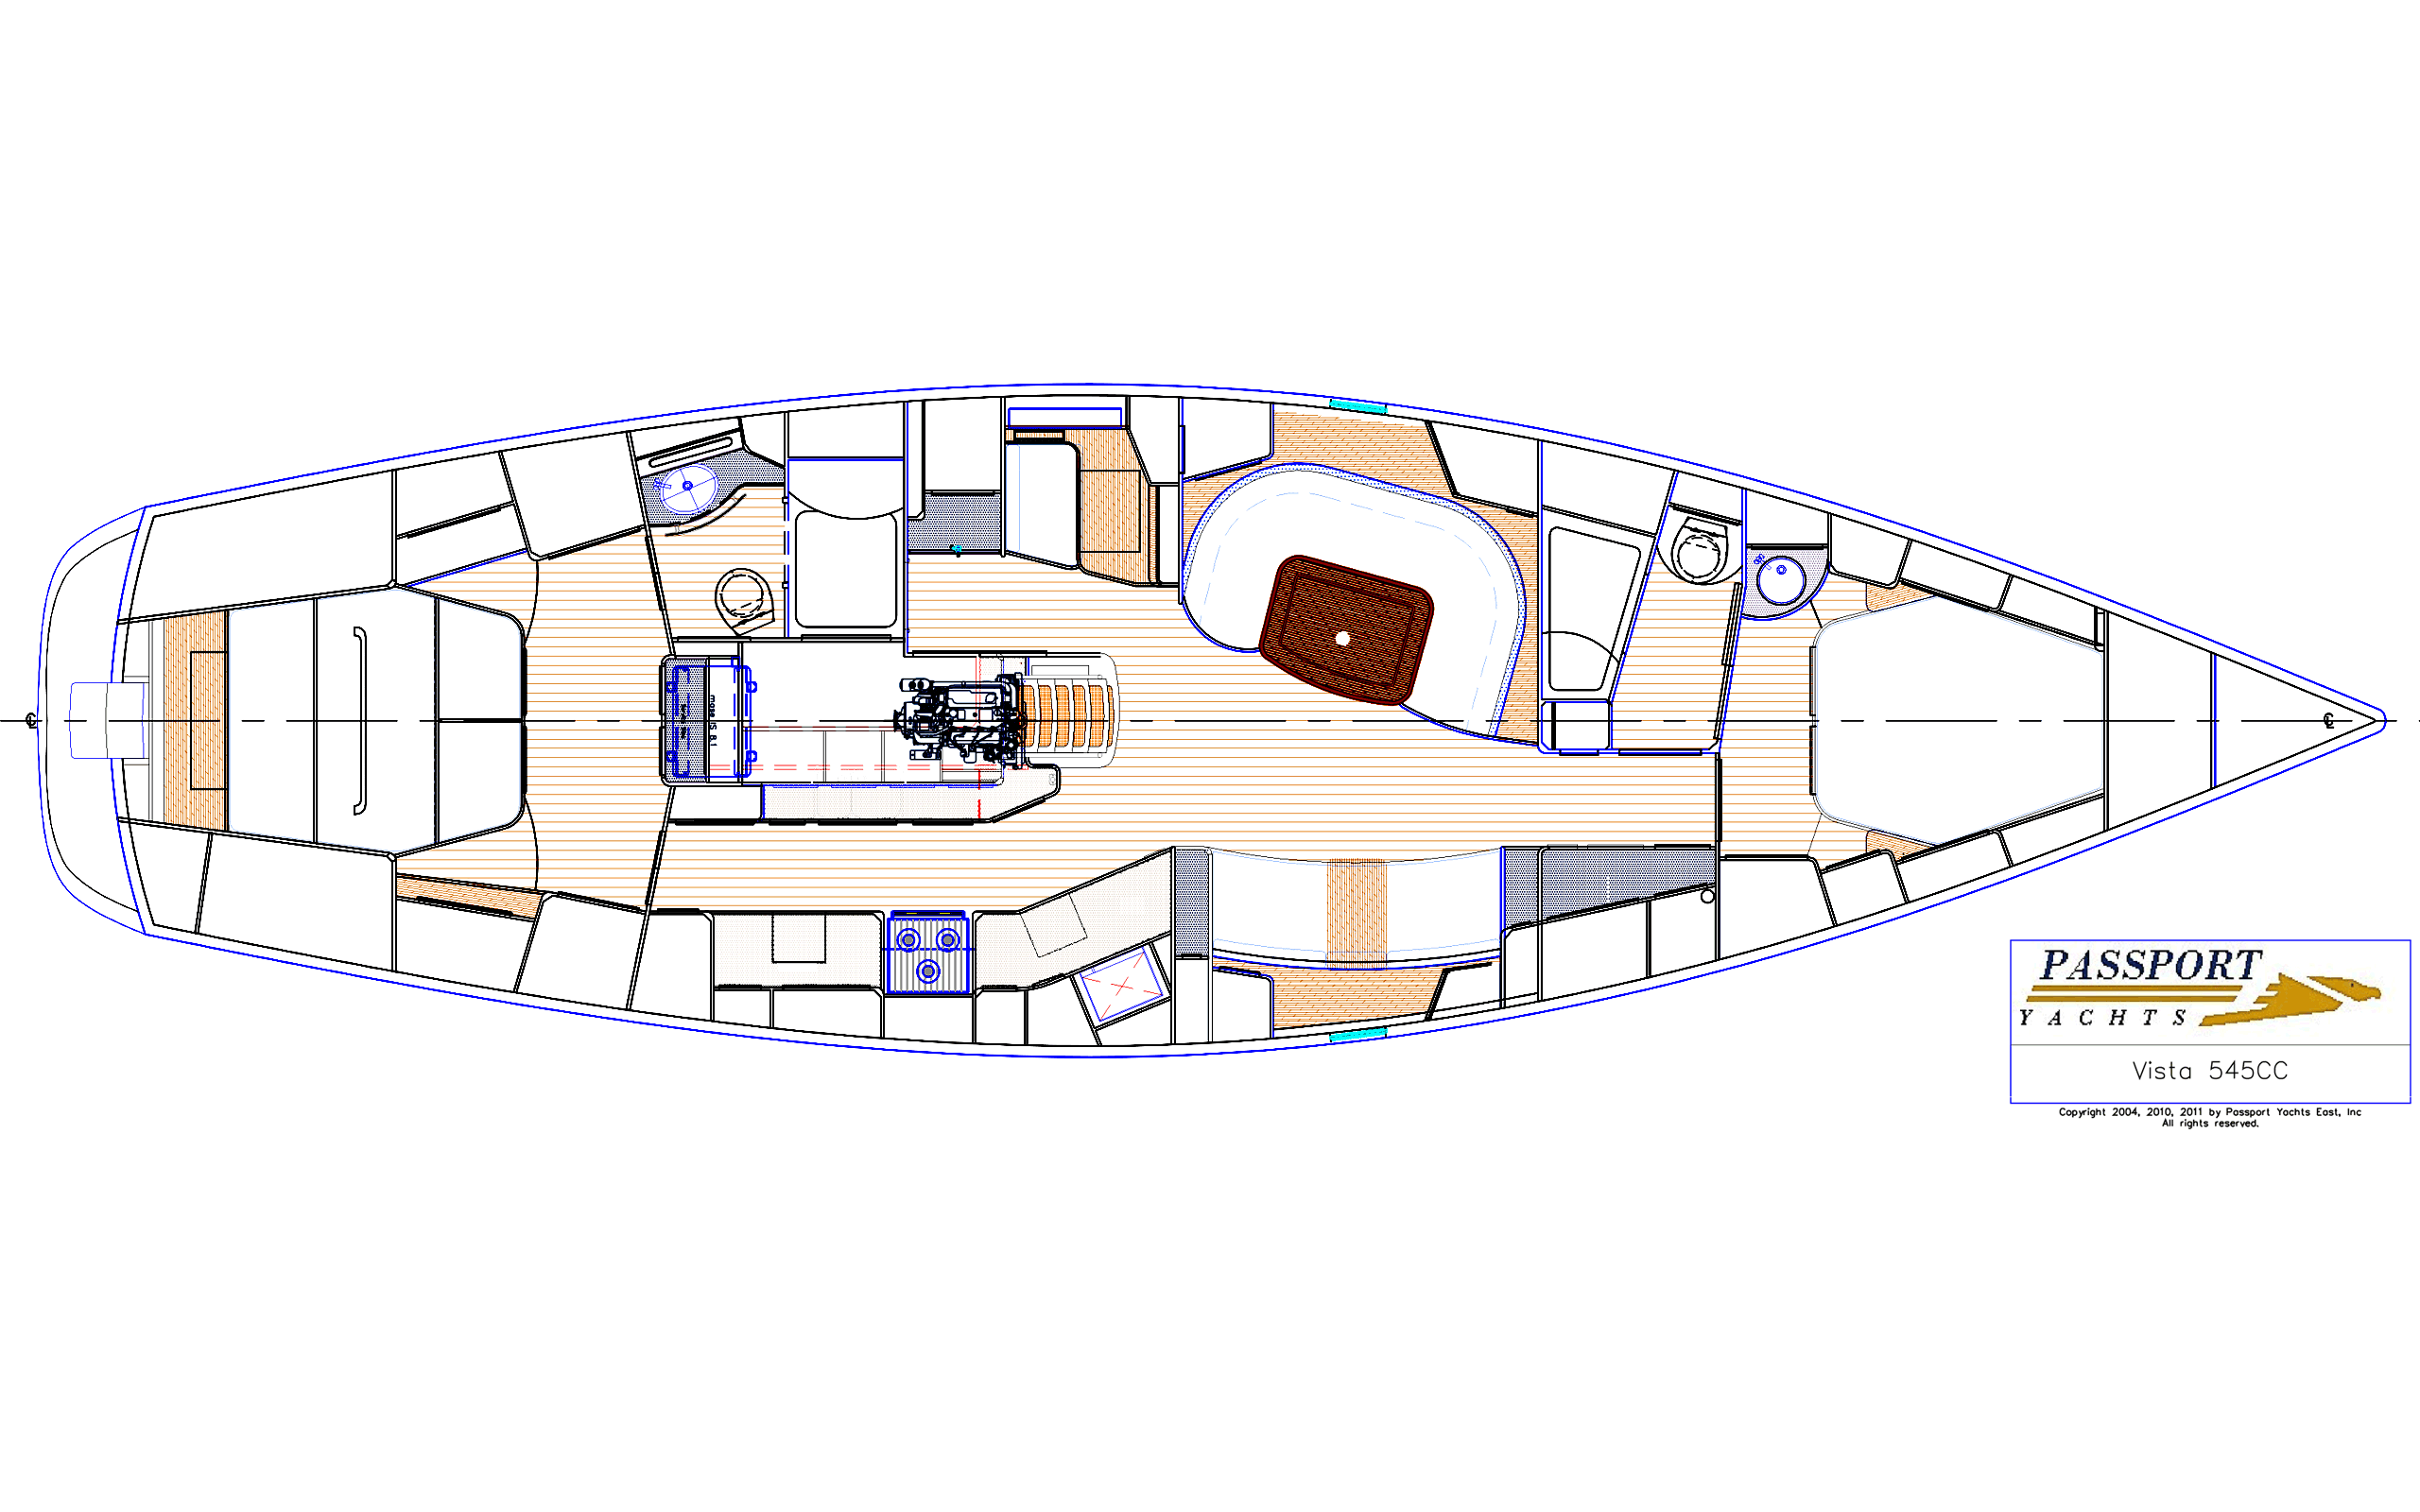 Layout-Passport-545CC-2-Stateroom